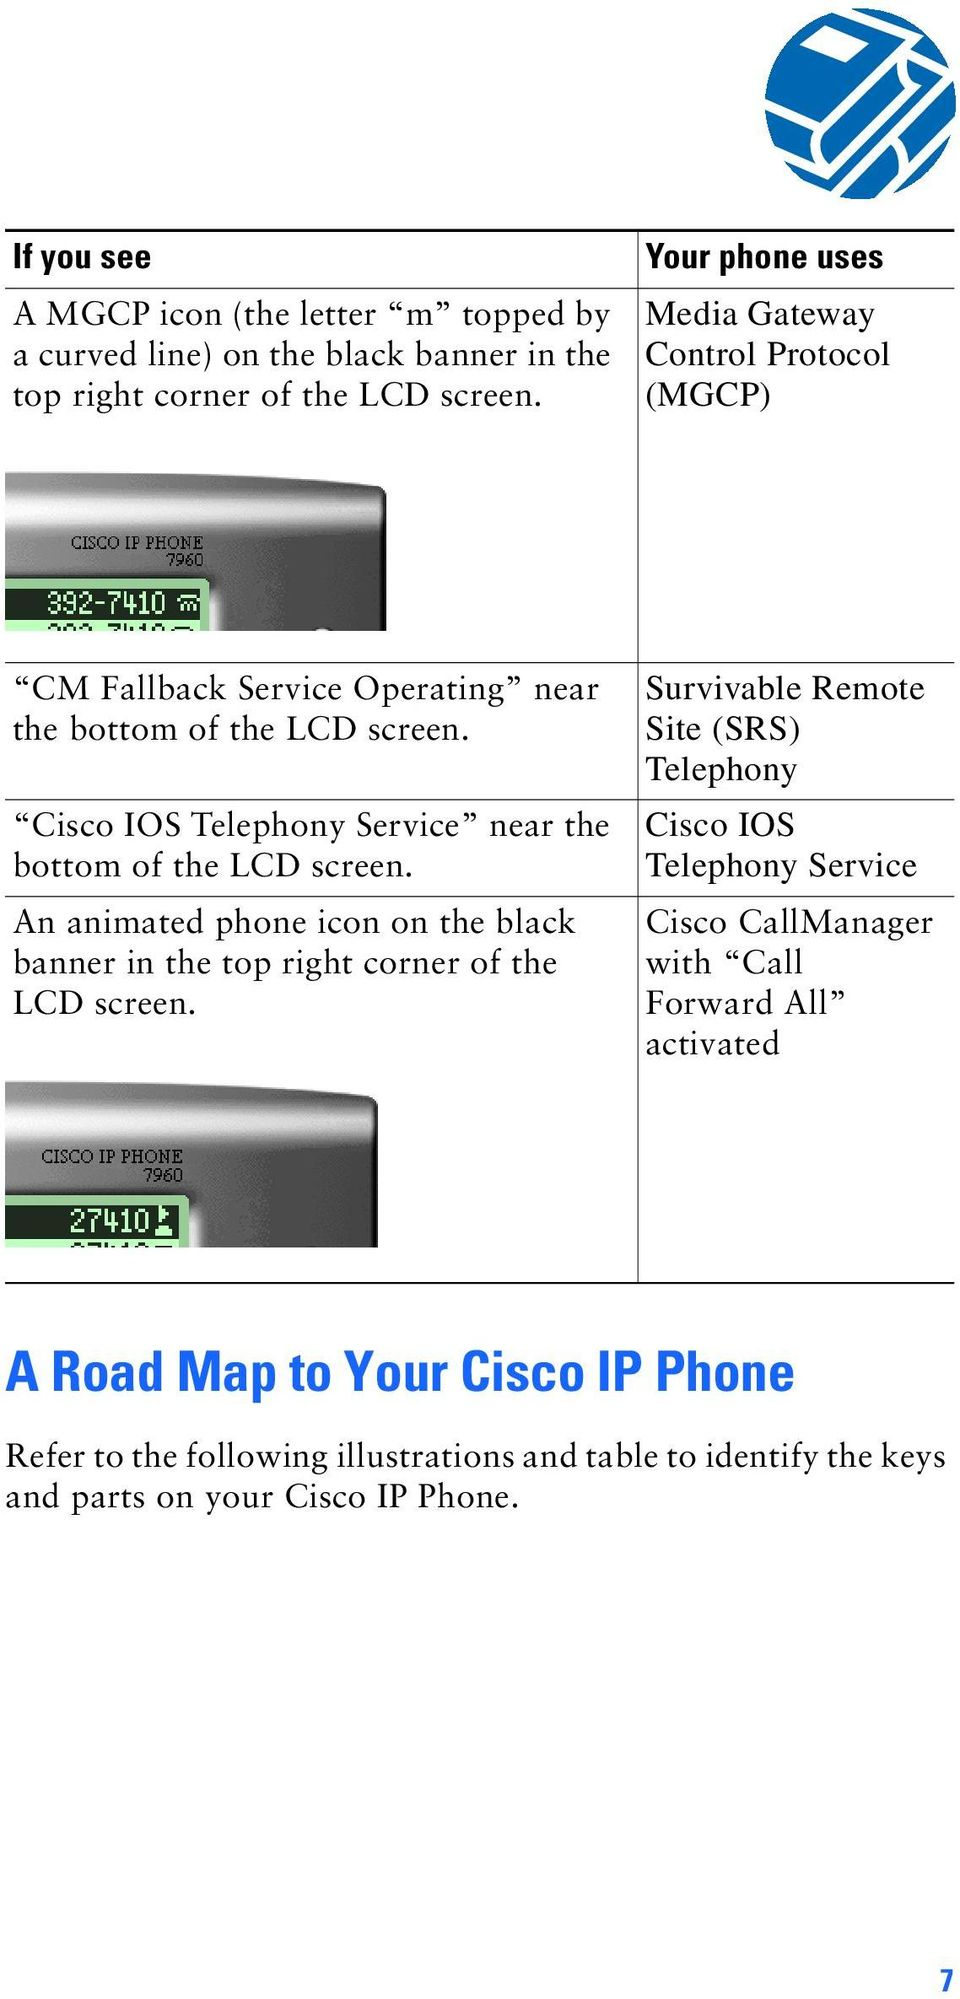 Cisco IOS Telephony Service near the bottom of the LCD screen. An animated phone icon on the black banner in the top right corner of the LCD screen.